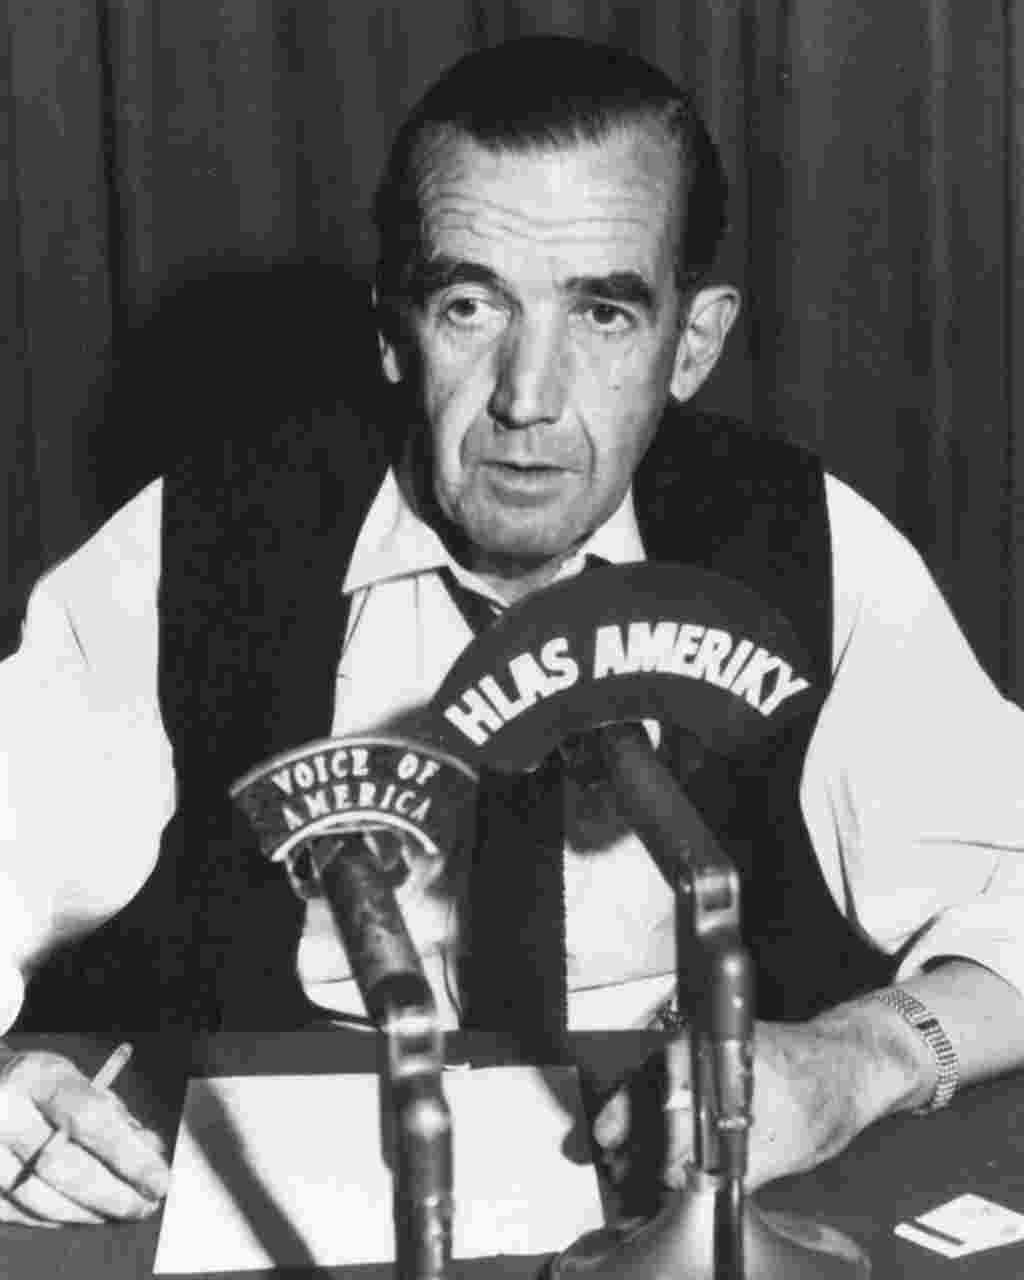 Edward R. Murrow, Director of VOA's parent agency, the U.S. Information Agency. 1961-1964